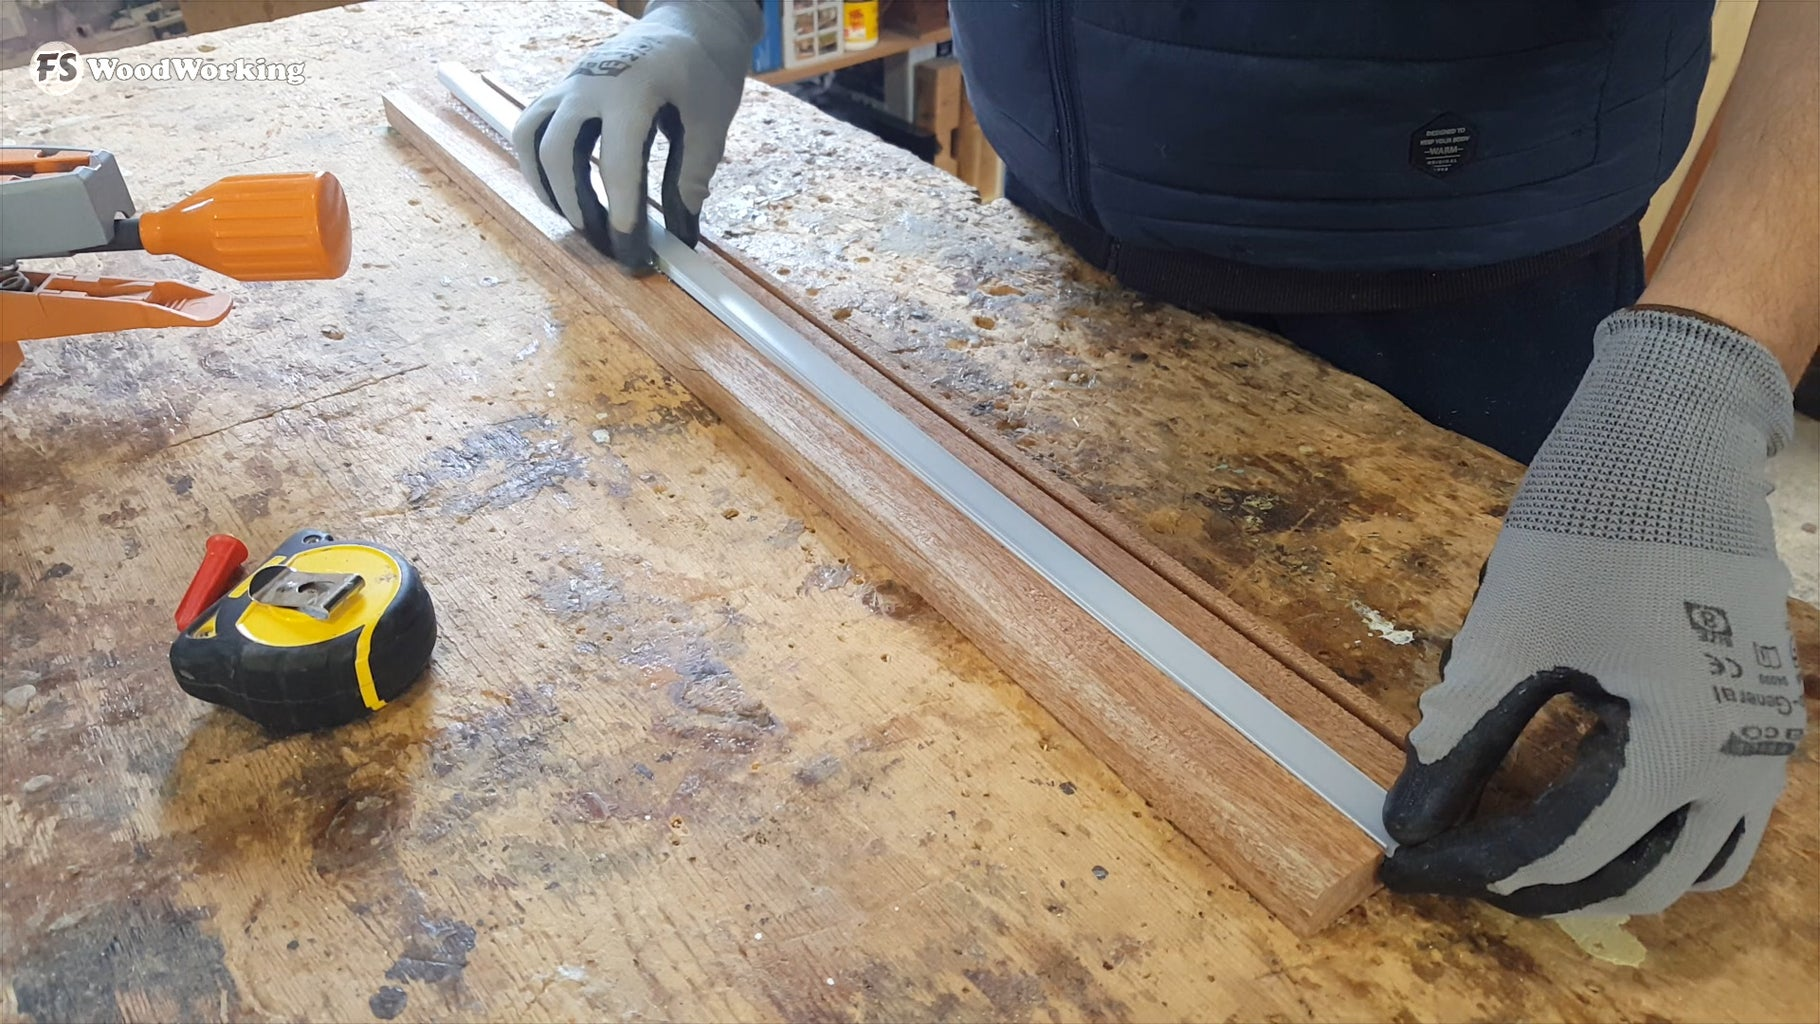 Gluing the Aluminum Channel